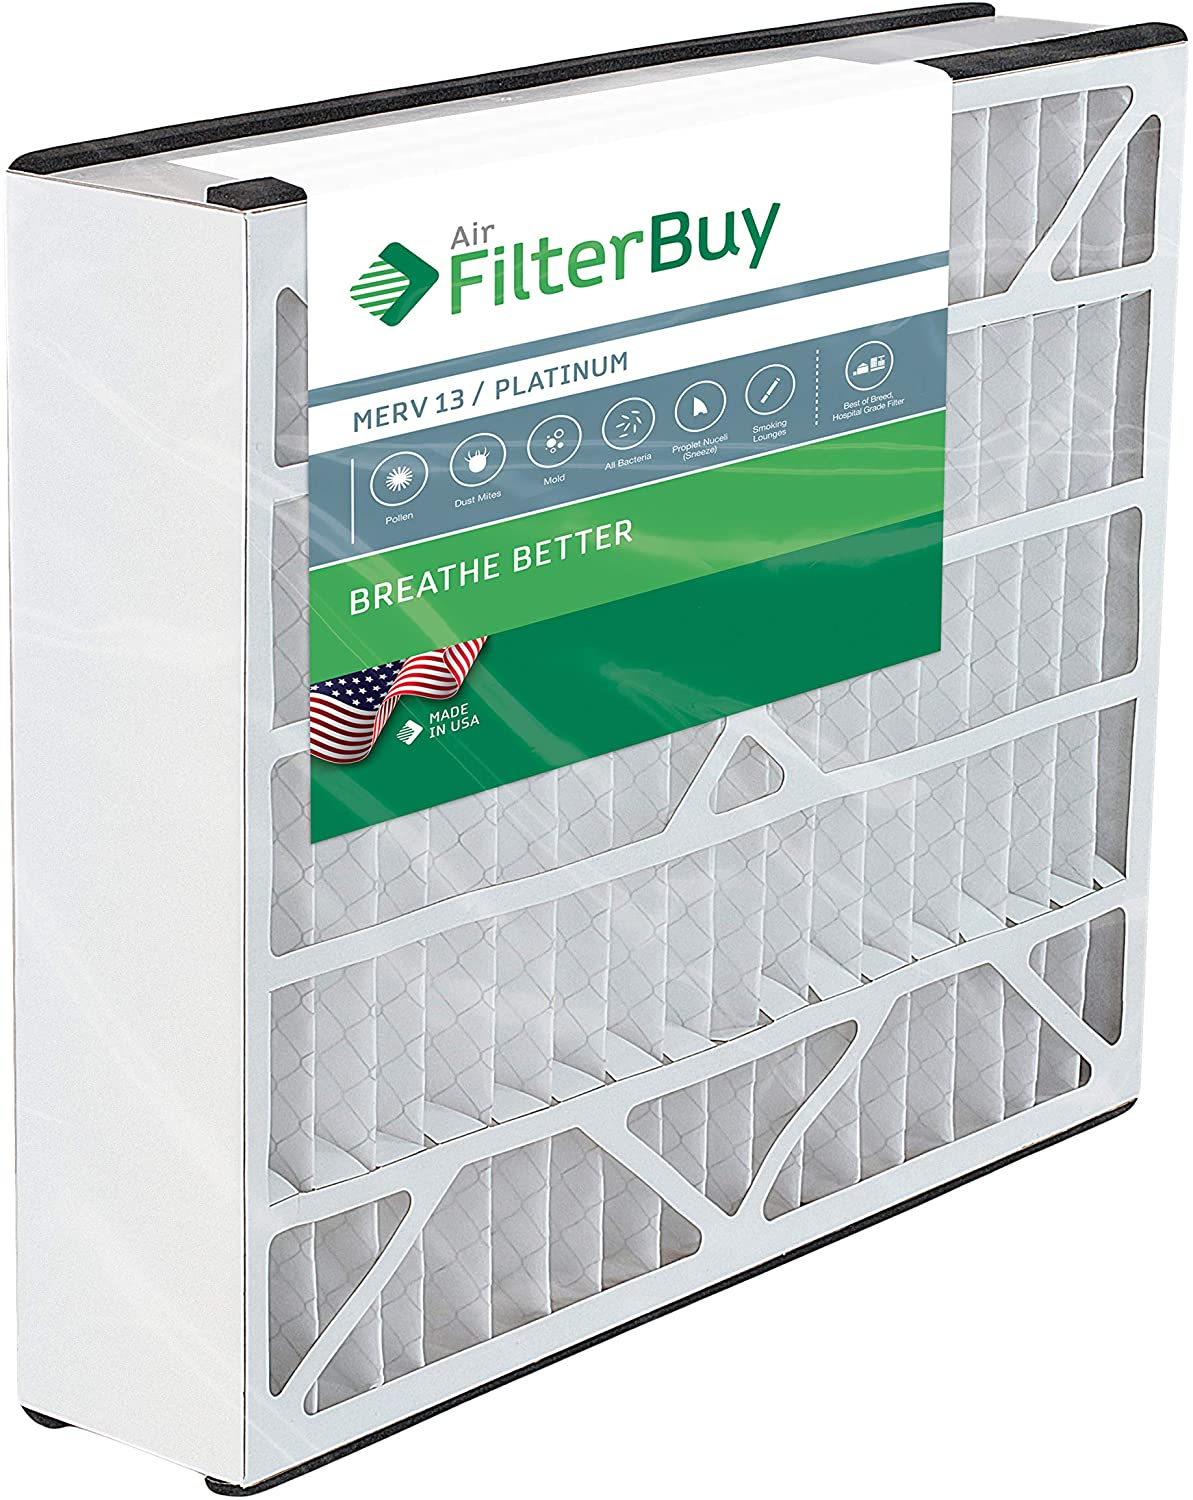 FilterBuy 20x20x5 Air Bear Trion 259112-103 Compatible Pleated AC Furnace Air Filters (MERV 13, AFB Platinum). 1 Pack.